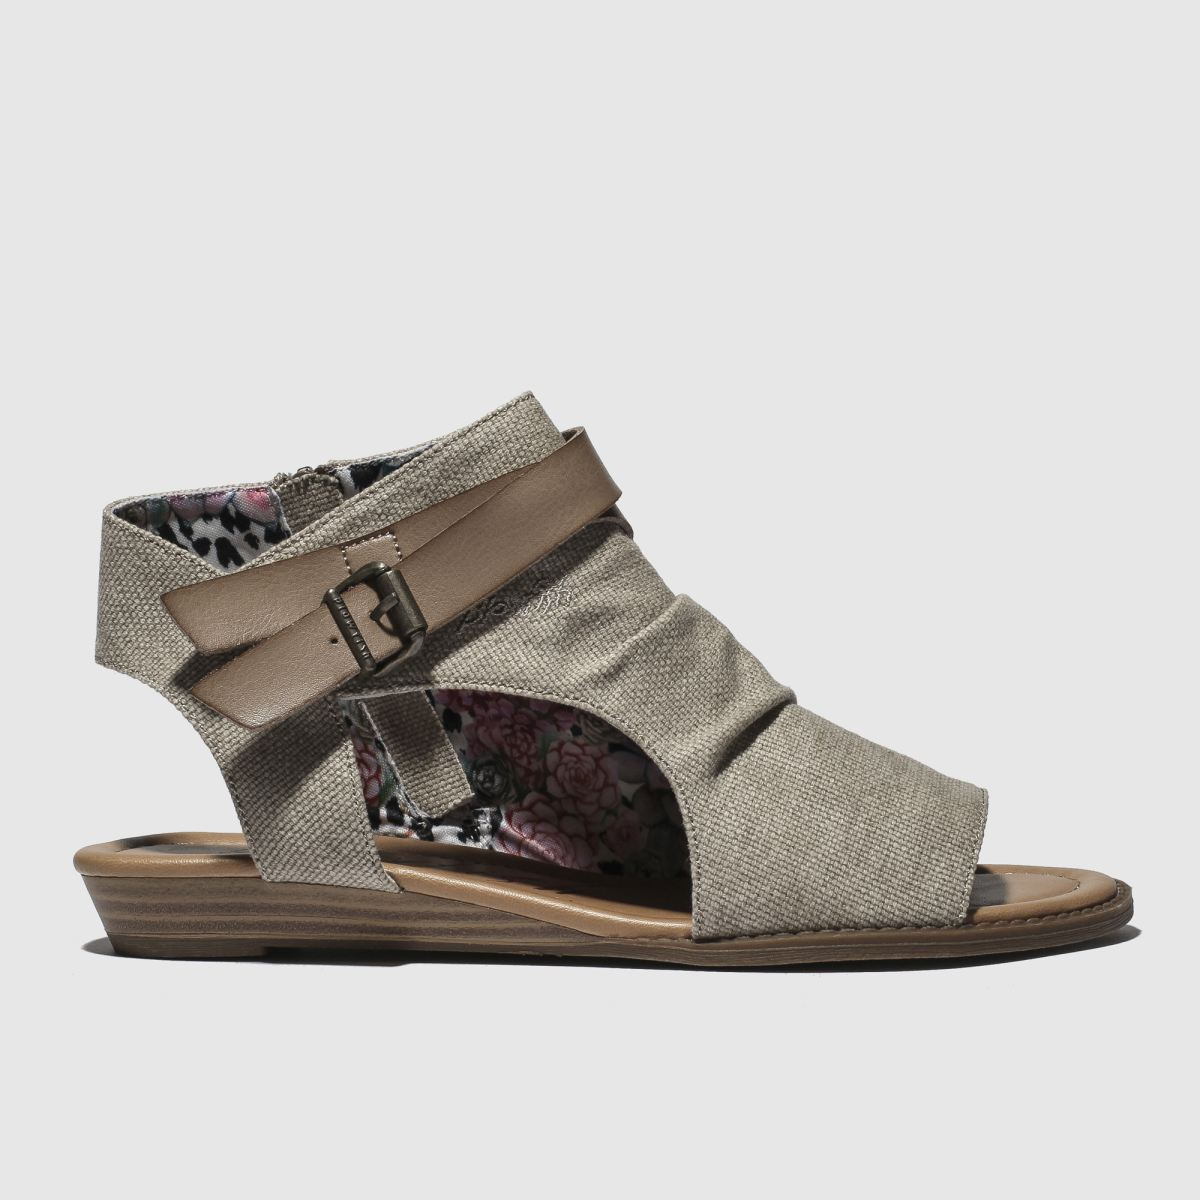 Blowfish Beige & Brown Balla Sandals